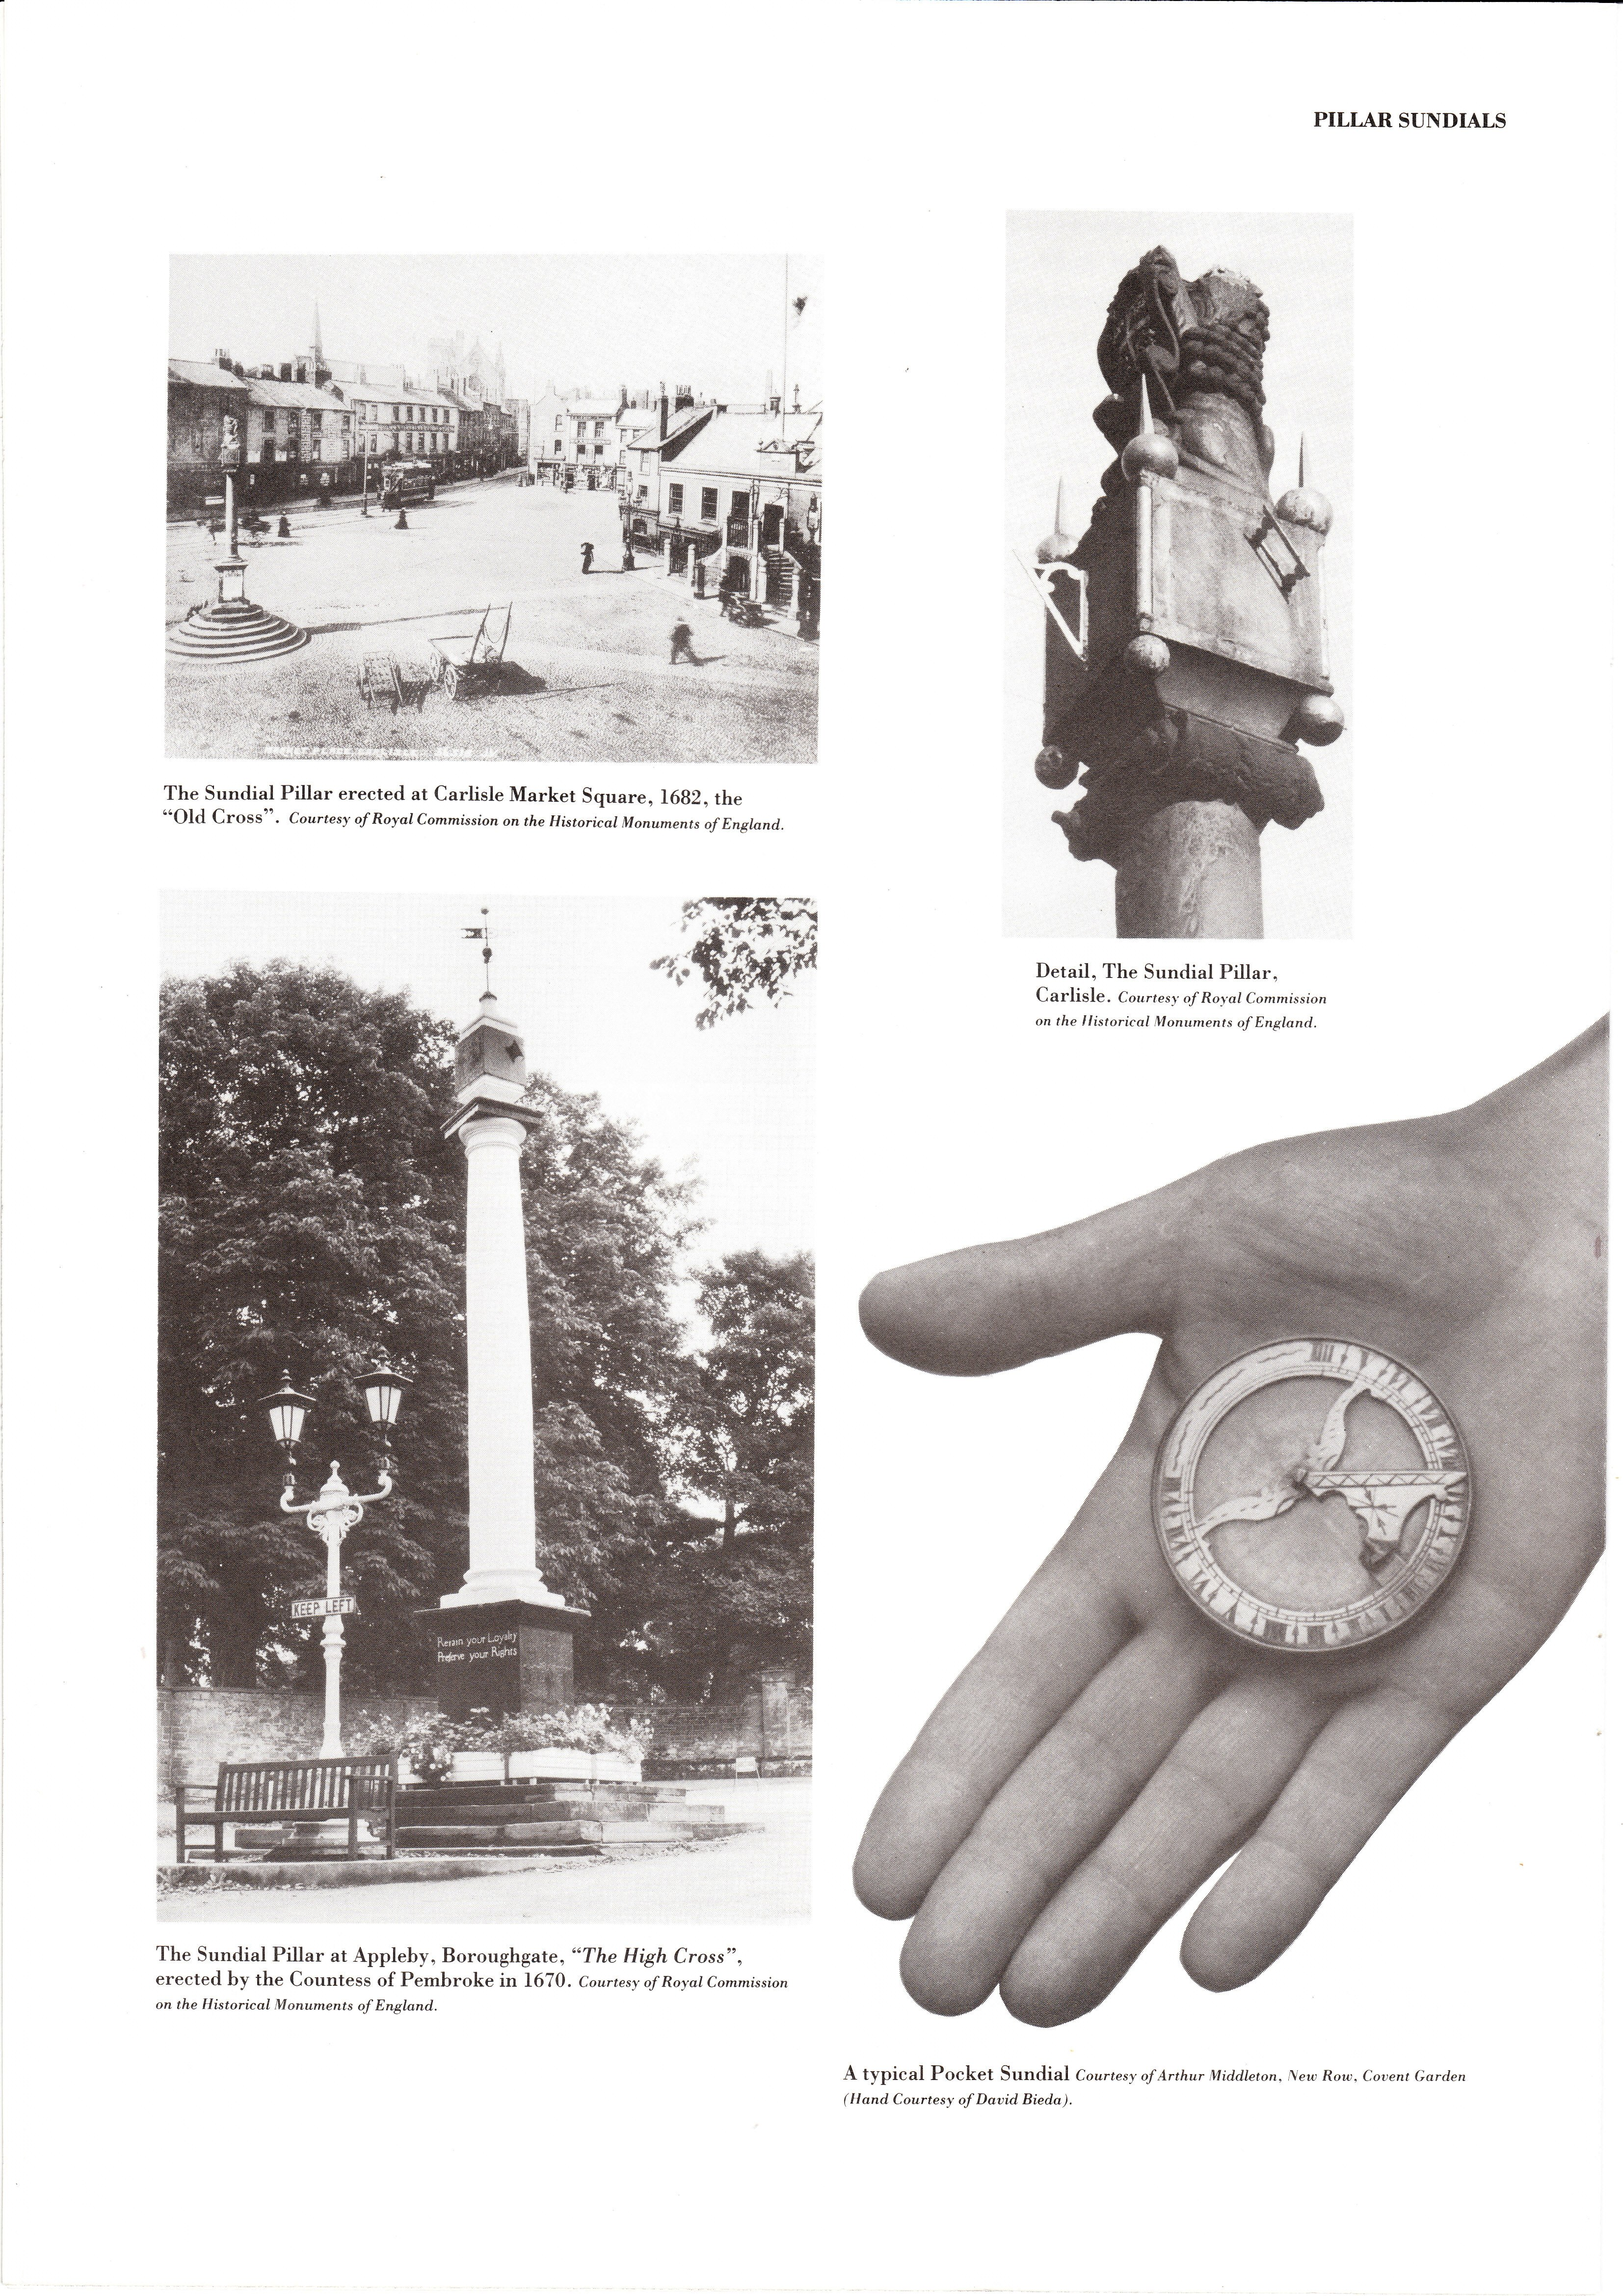 Pillar Sundials from 'The Seven Dials' by founder trustee, the late Sir John Summerson, founder trustee